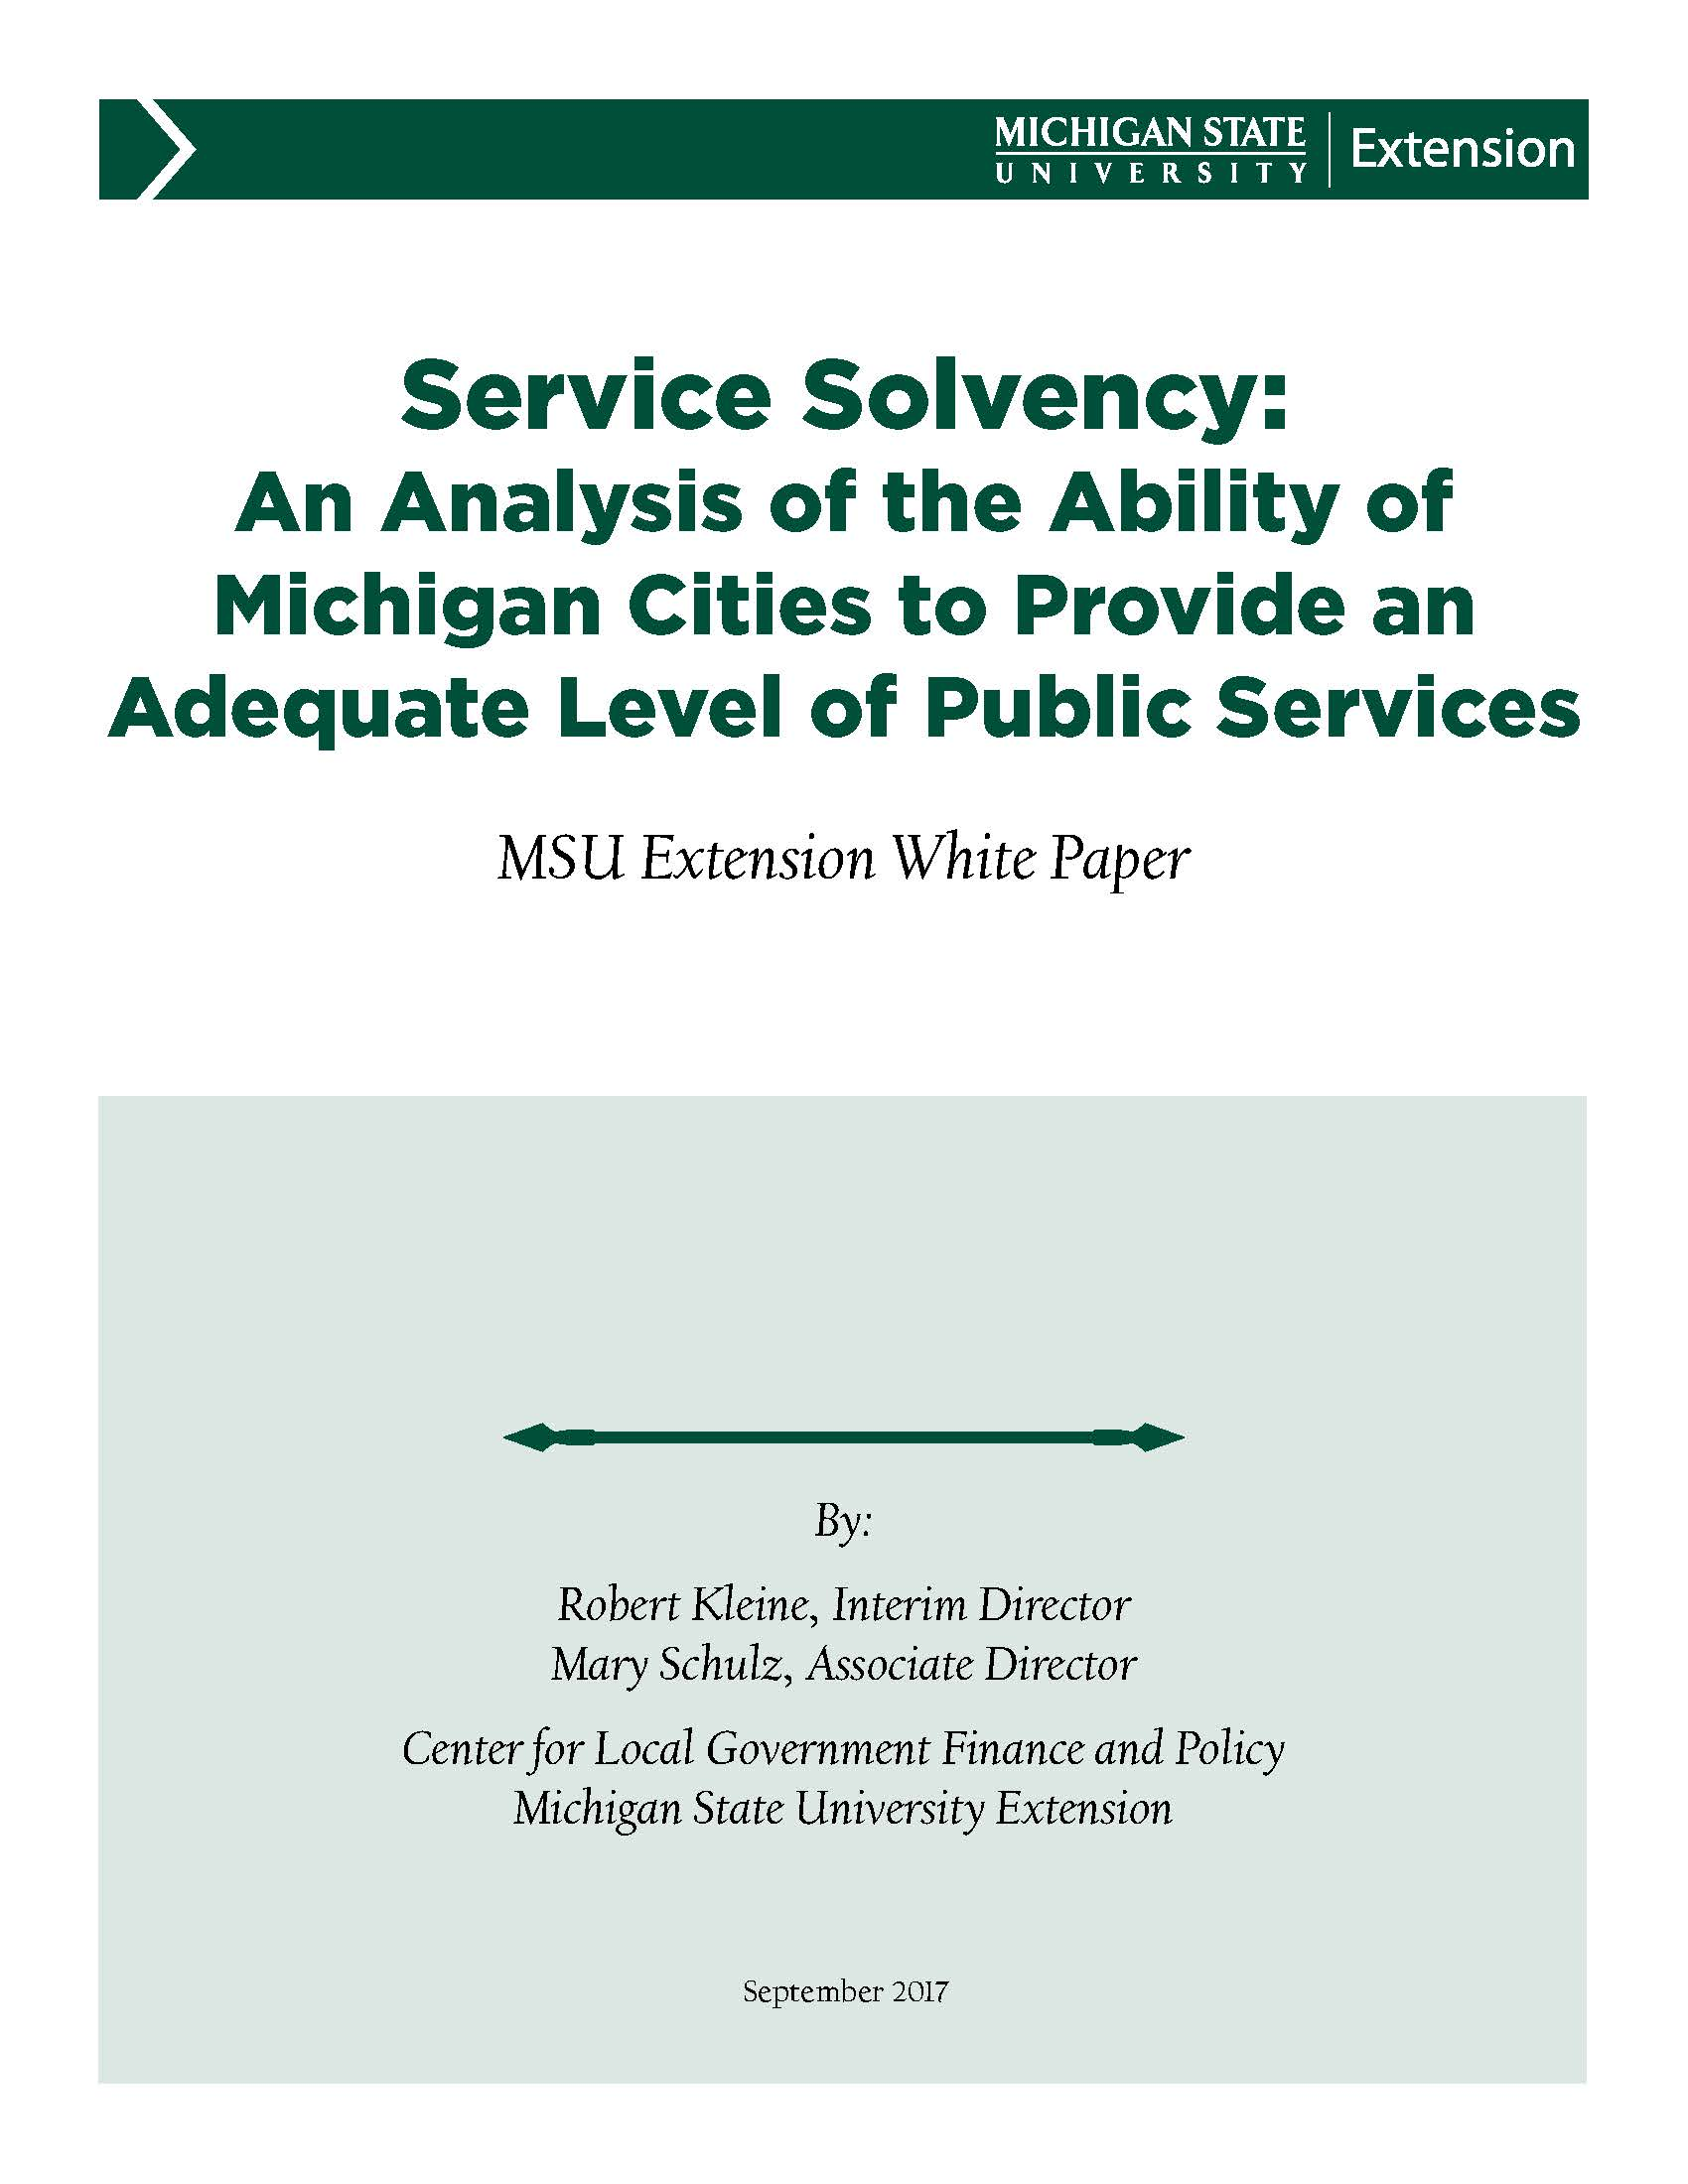 Service Solvency: Ability of Michigan Cities to Provide an Adequate Level of Public Services